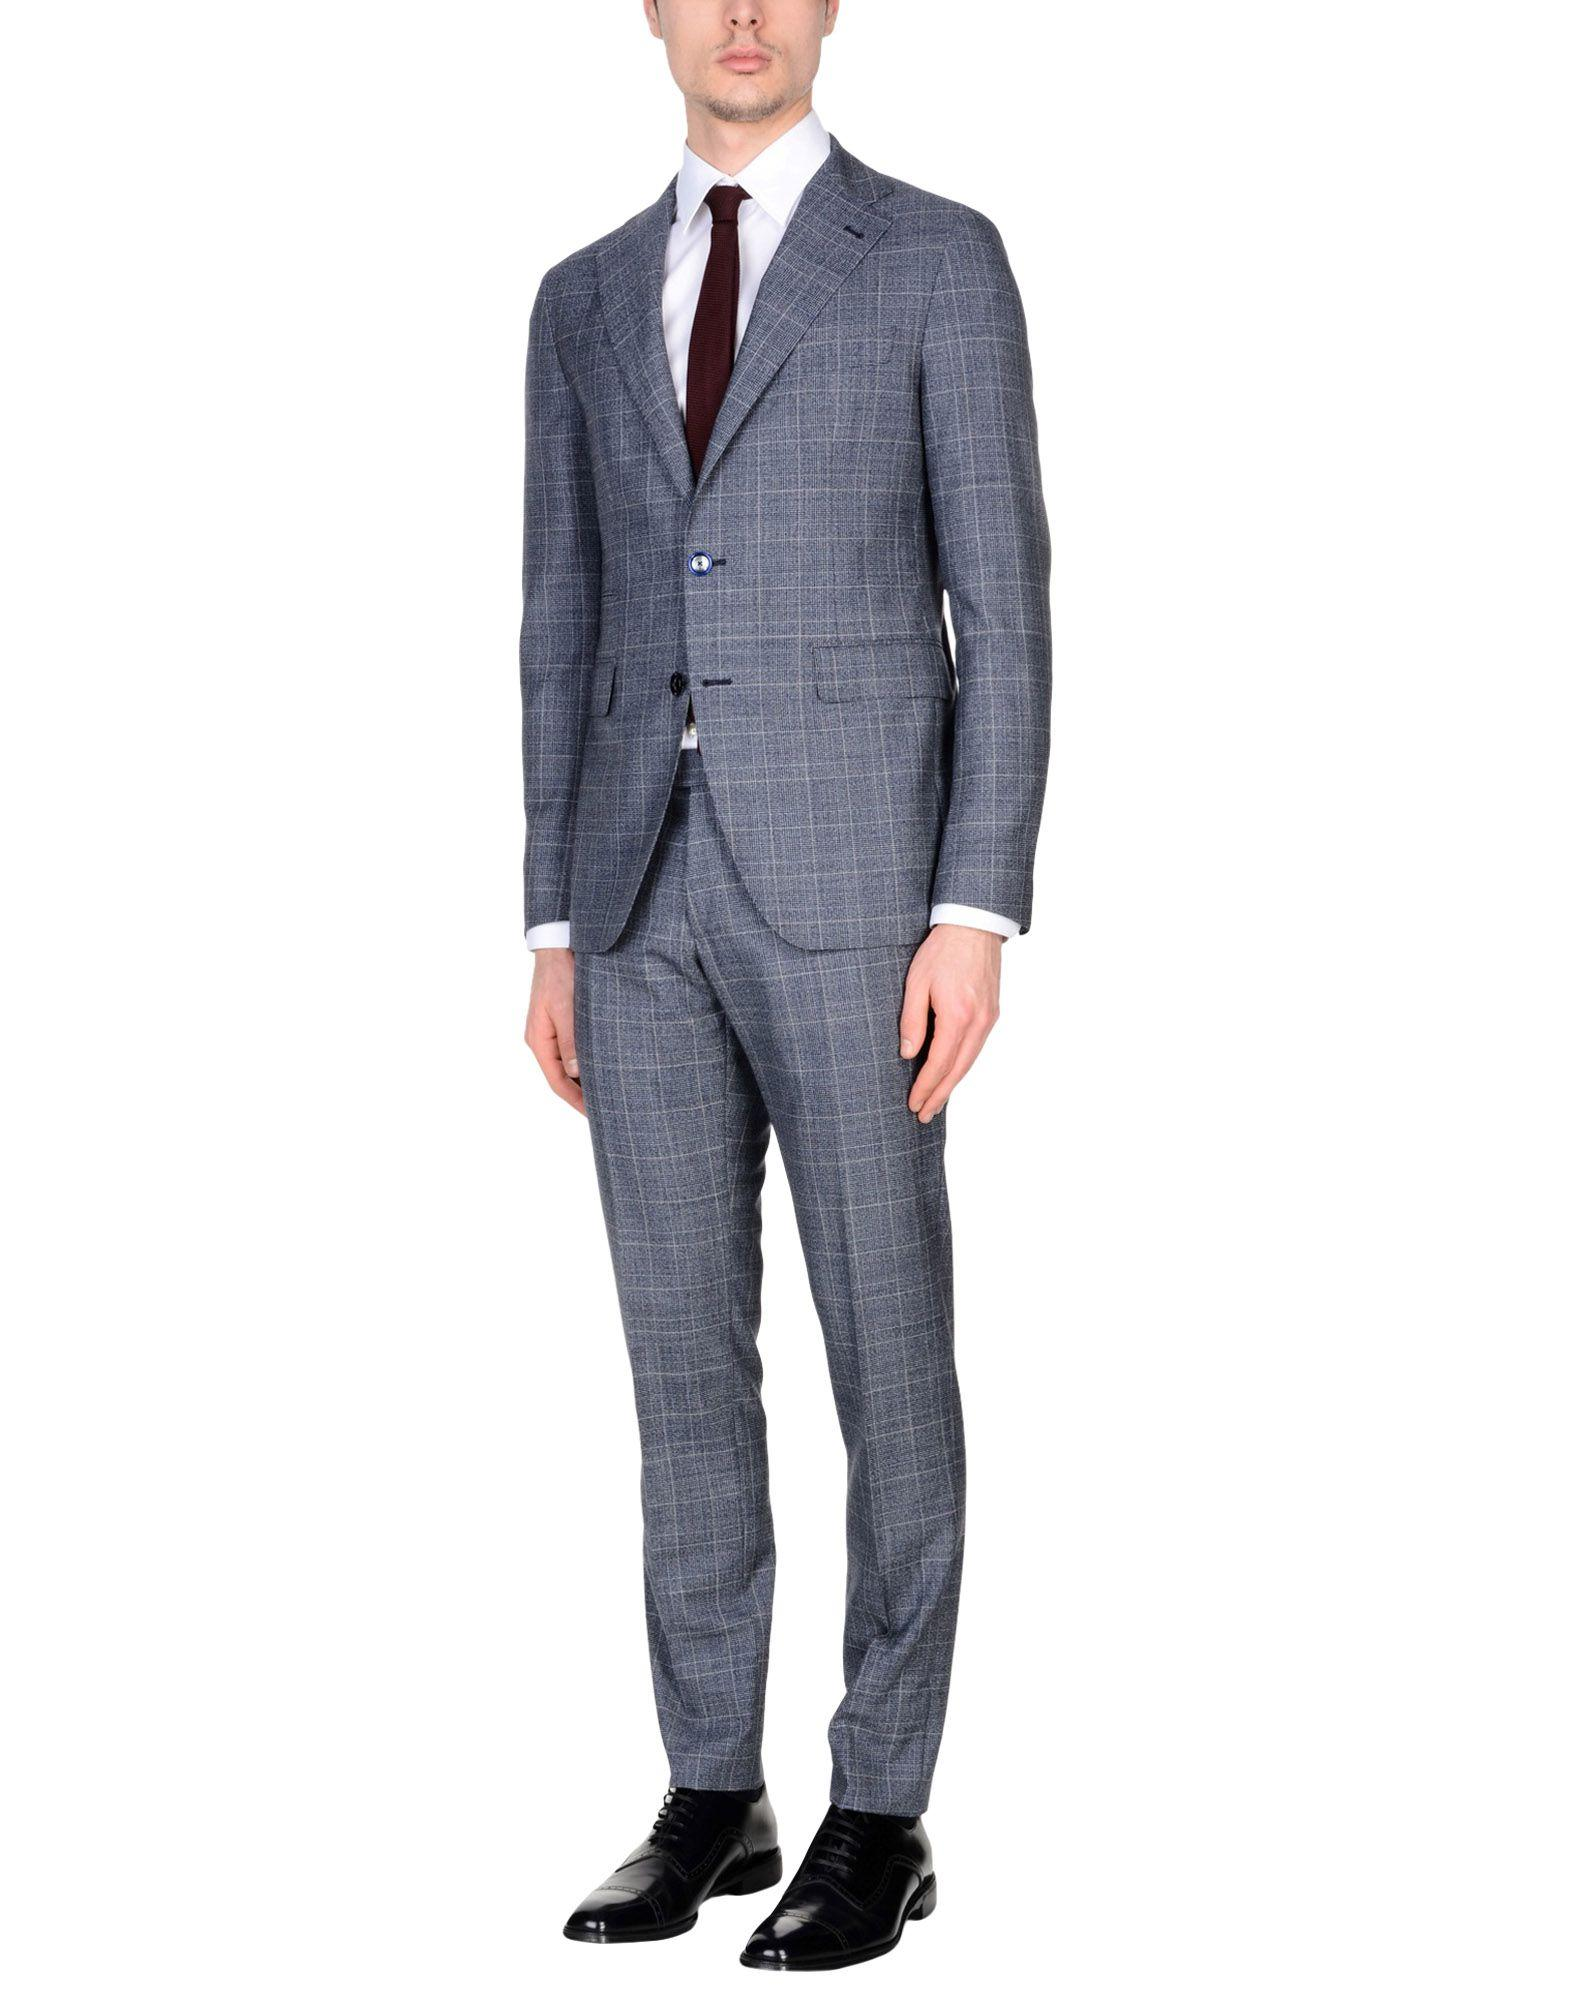 Tagliatore Suits In Blue